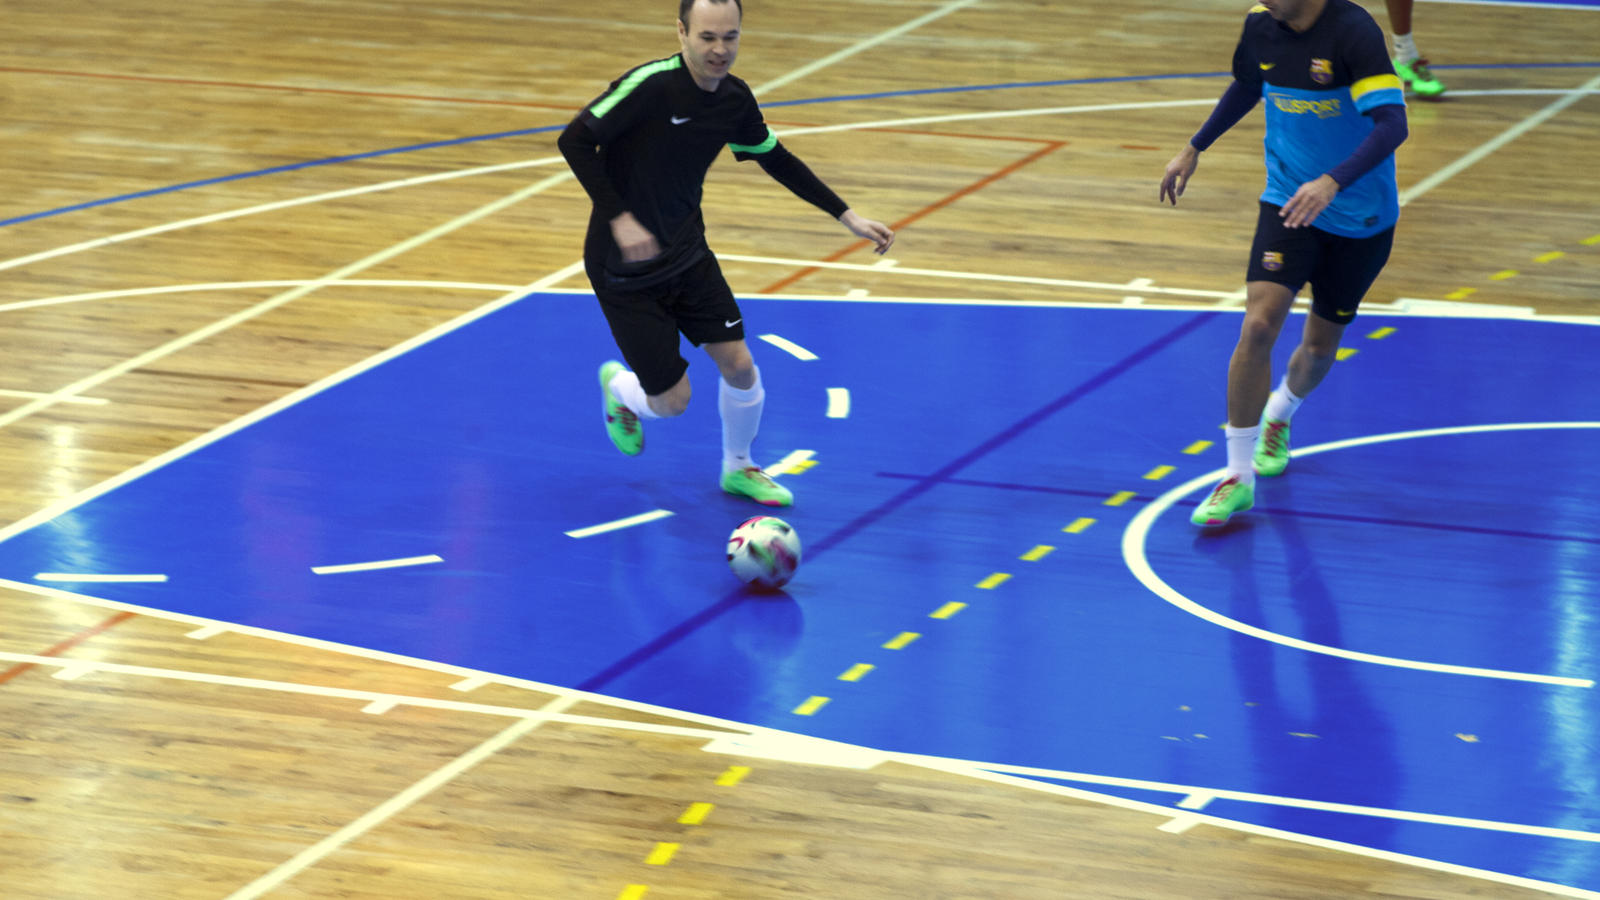 líquido Desempacando Pelmel  Andrés Iniesta, Jordi Torras share their mutual admiration for football and  futsal - Nike News